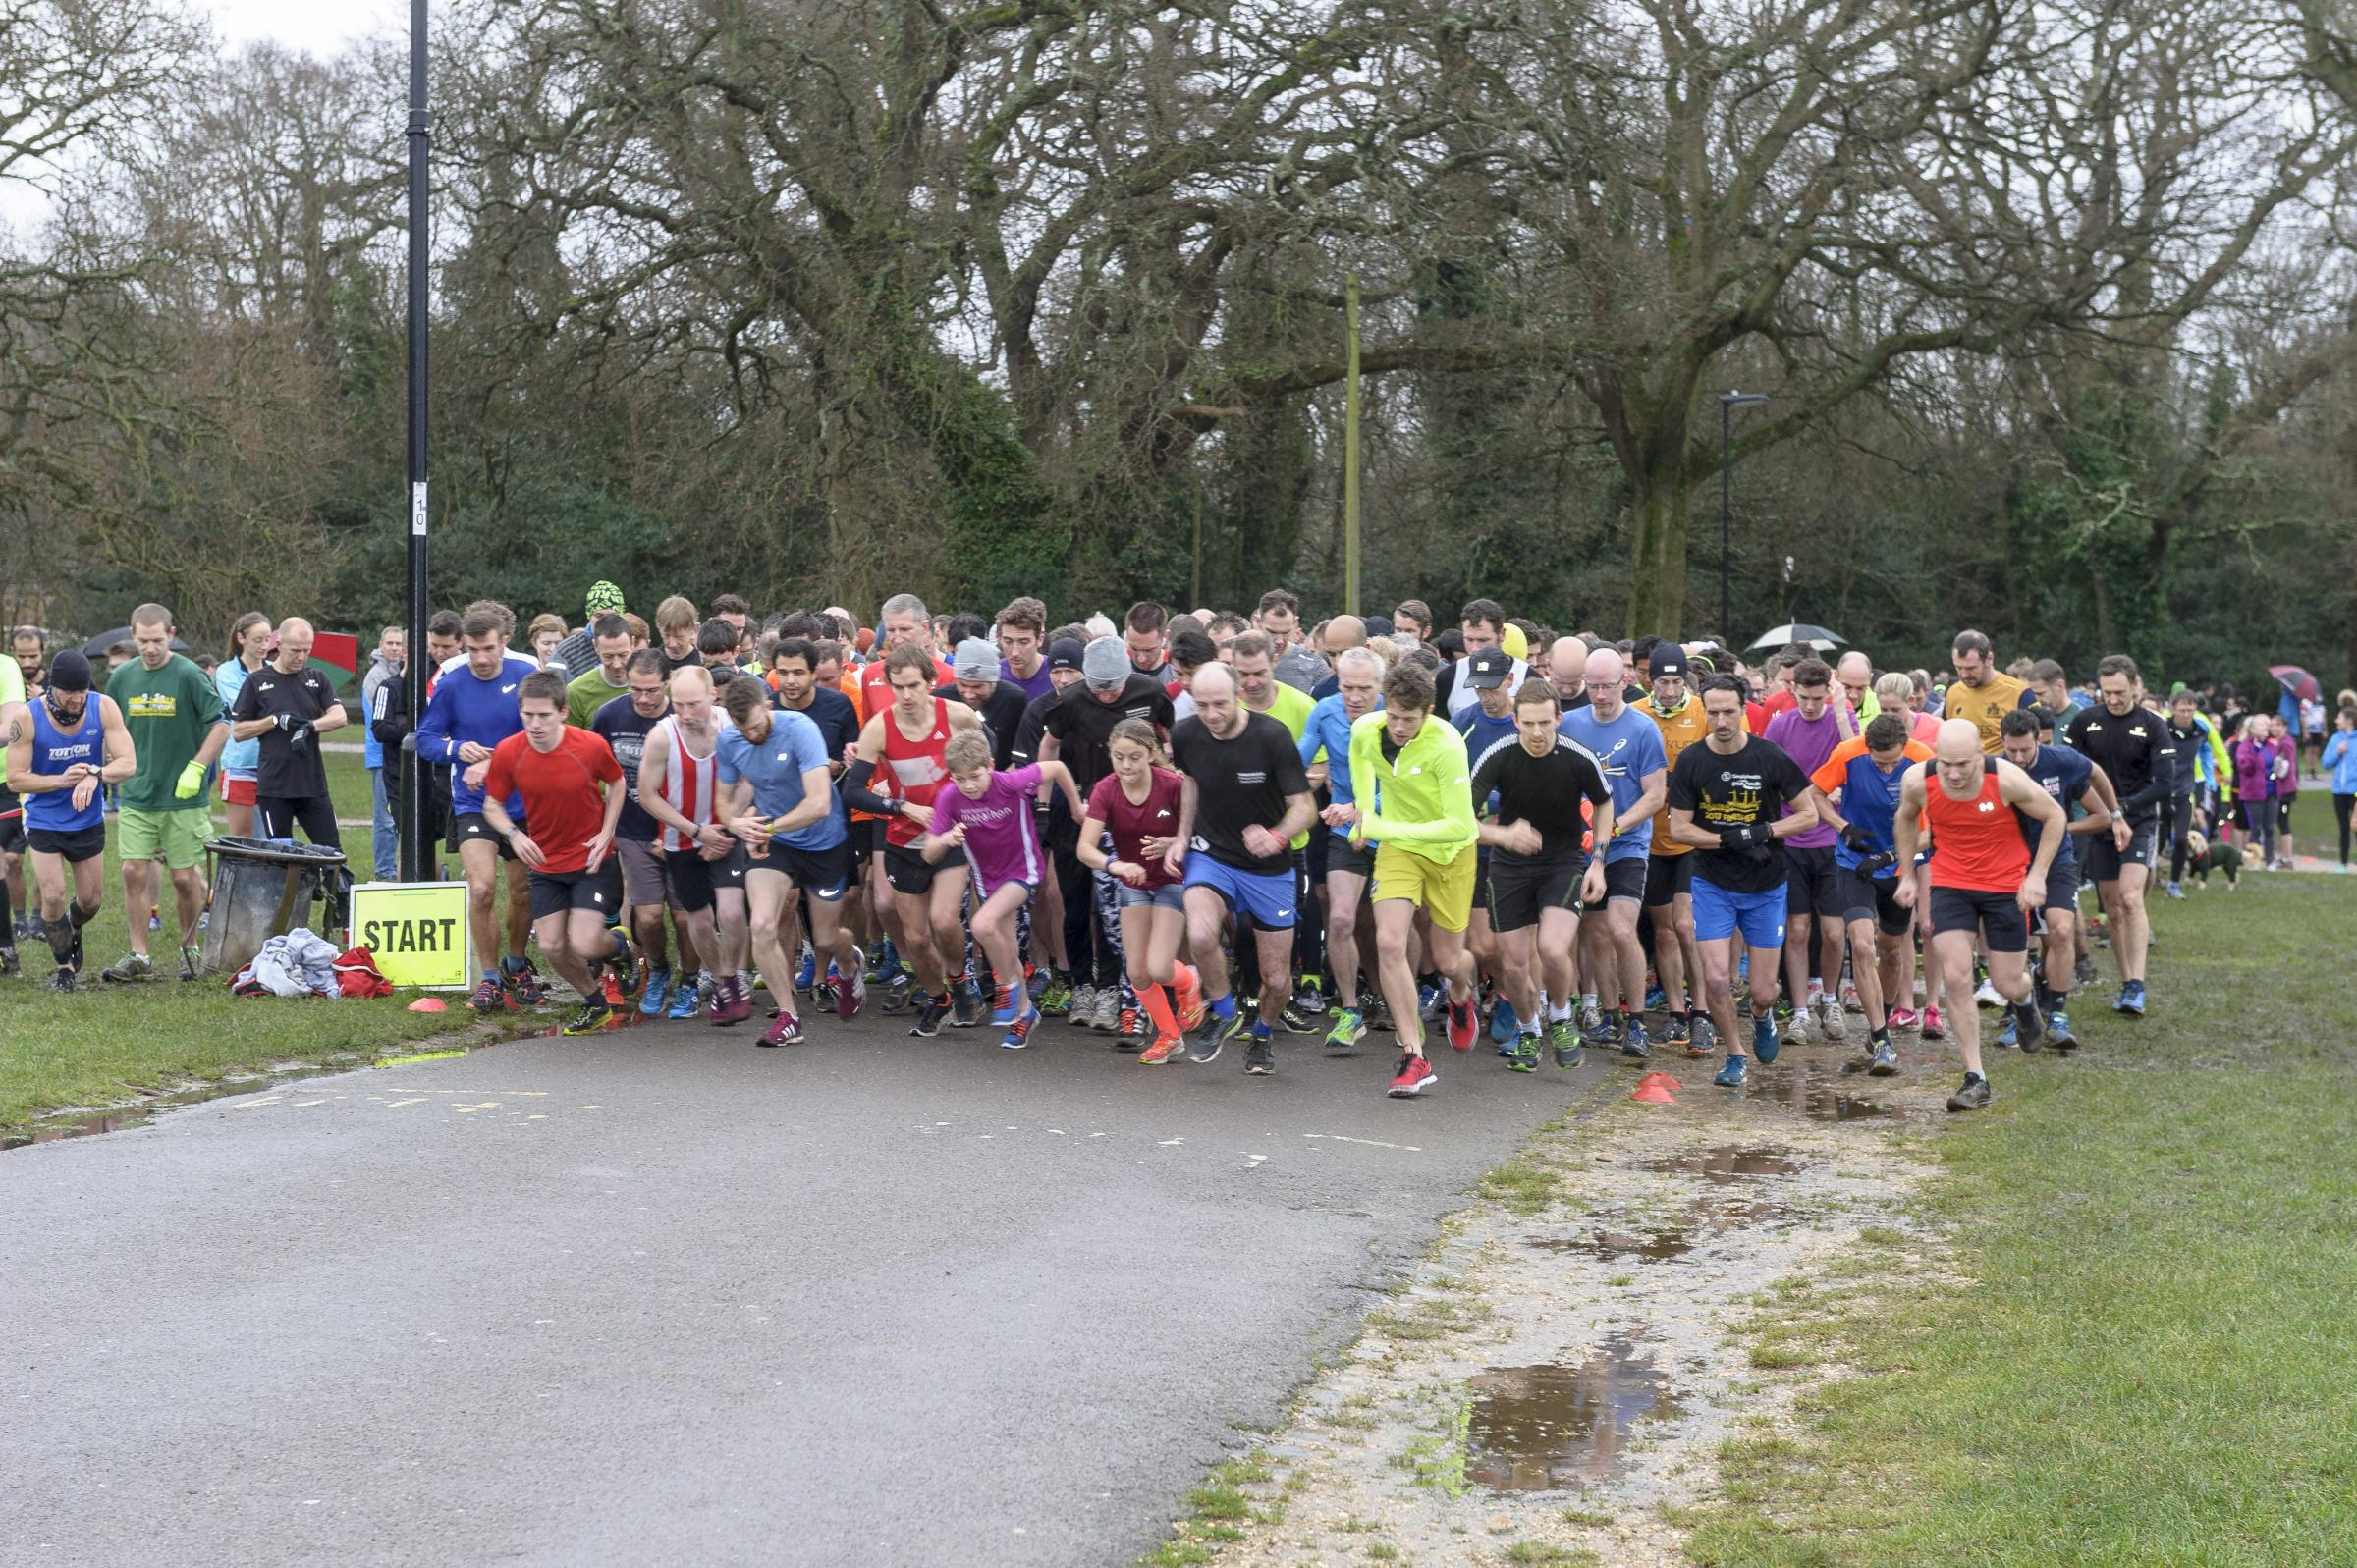 A parkrun event in Southampton